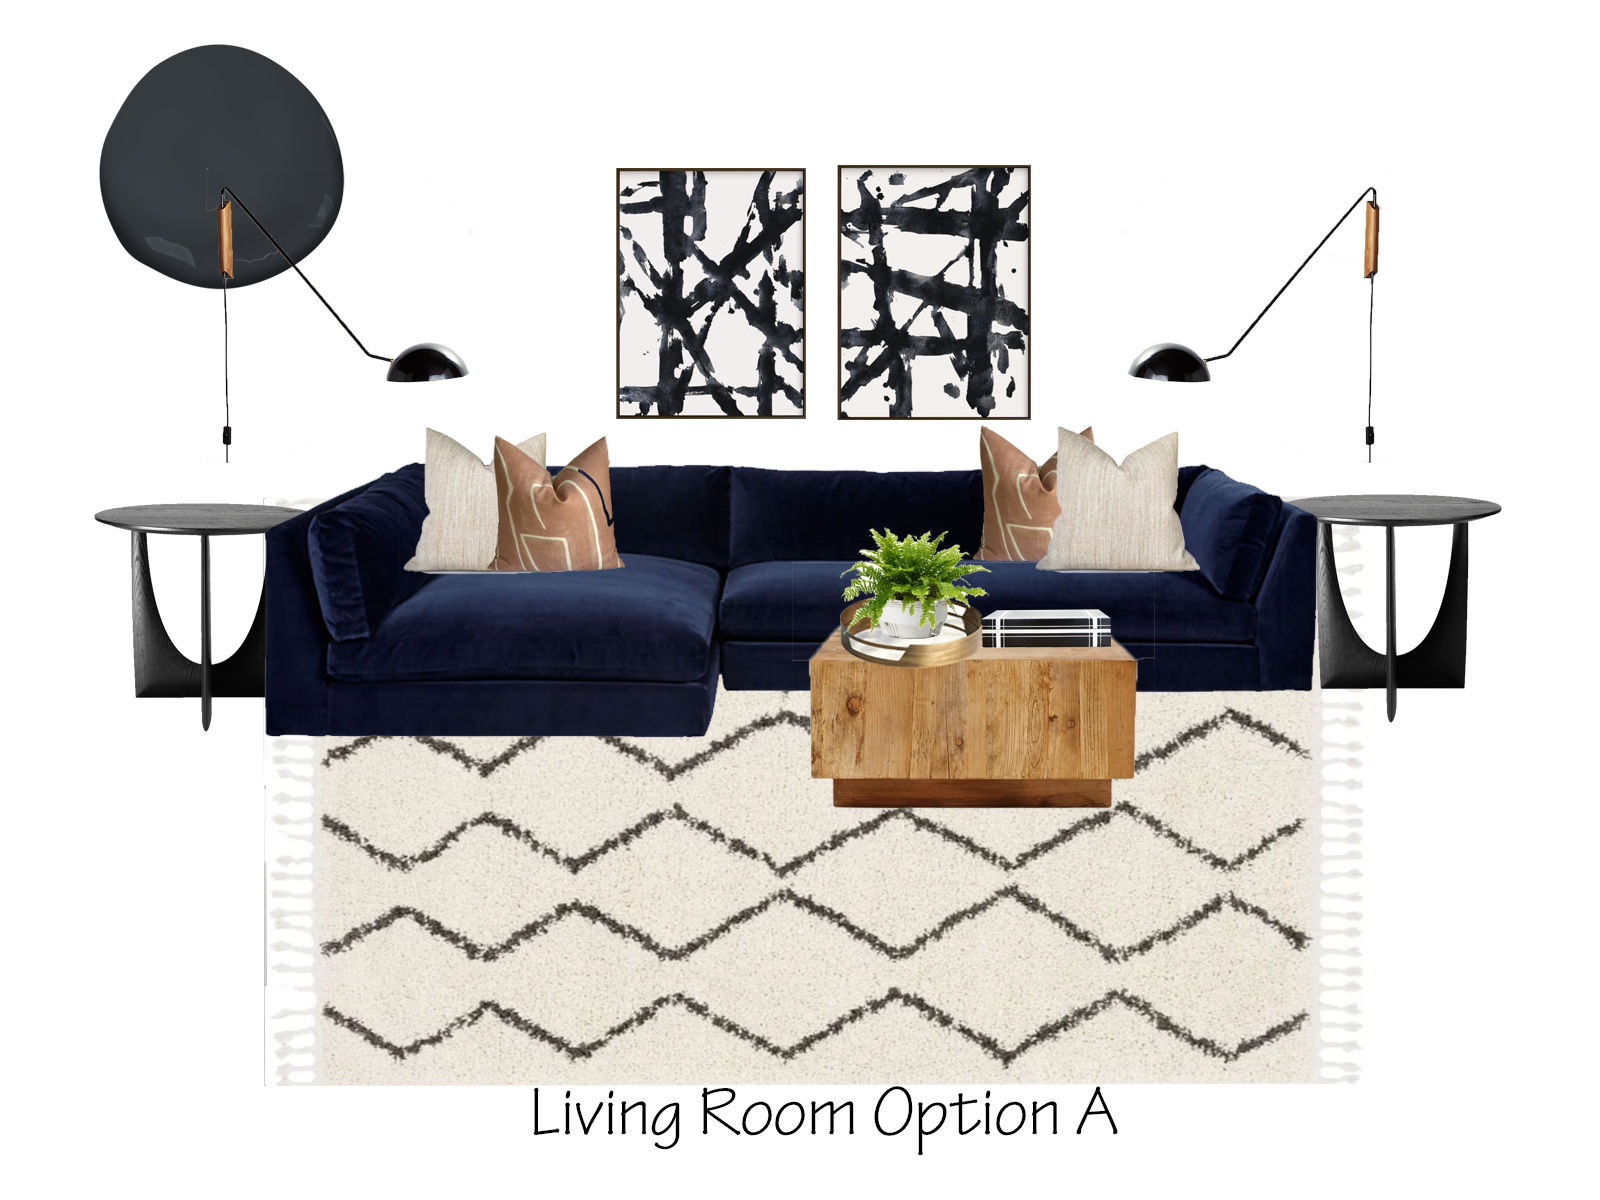 Eclectic Living Room Design Option A